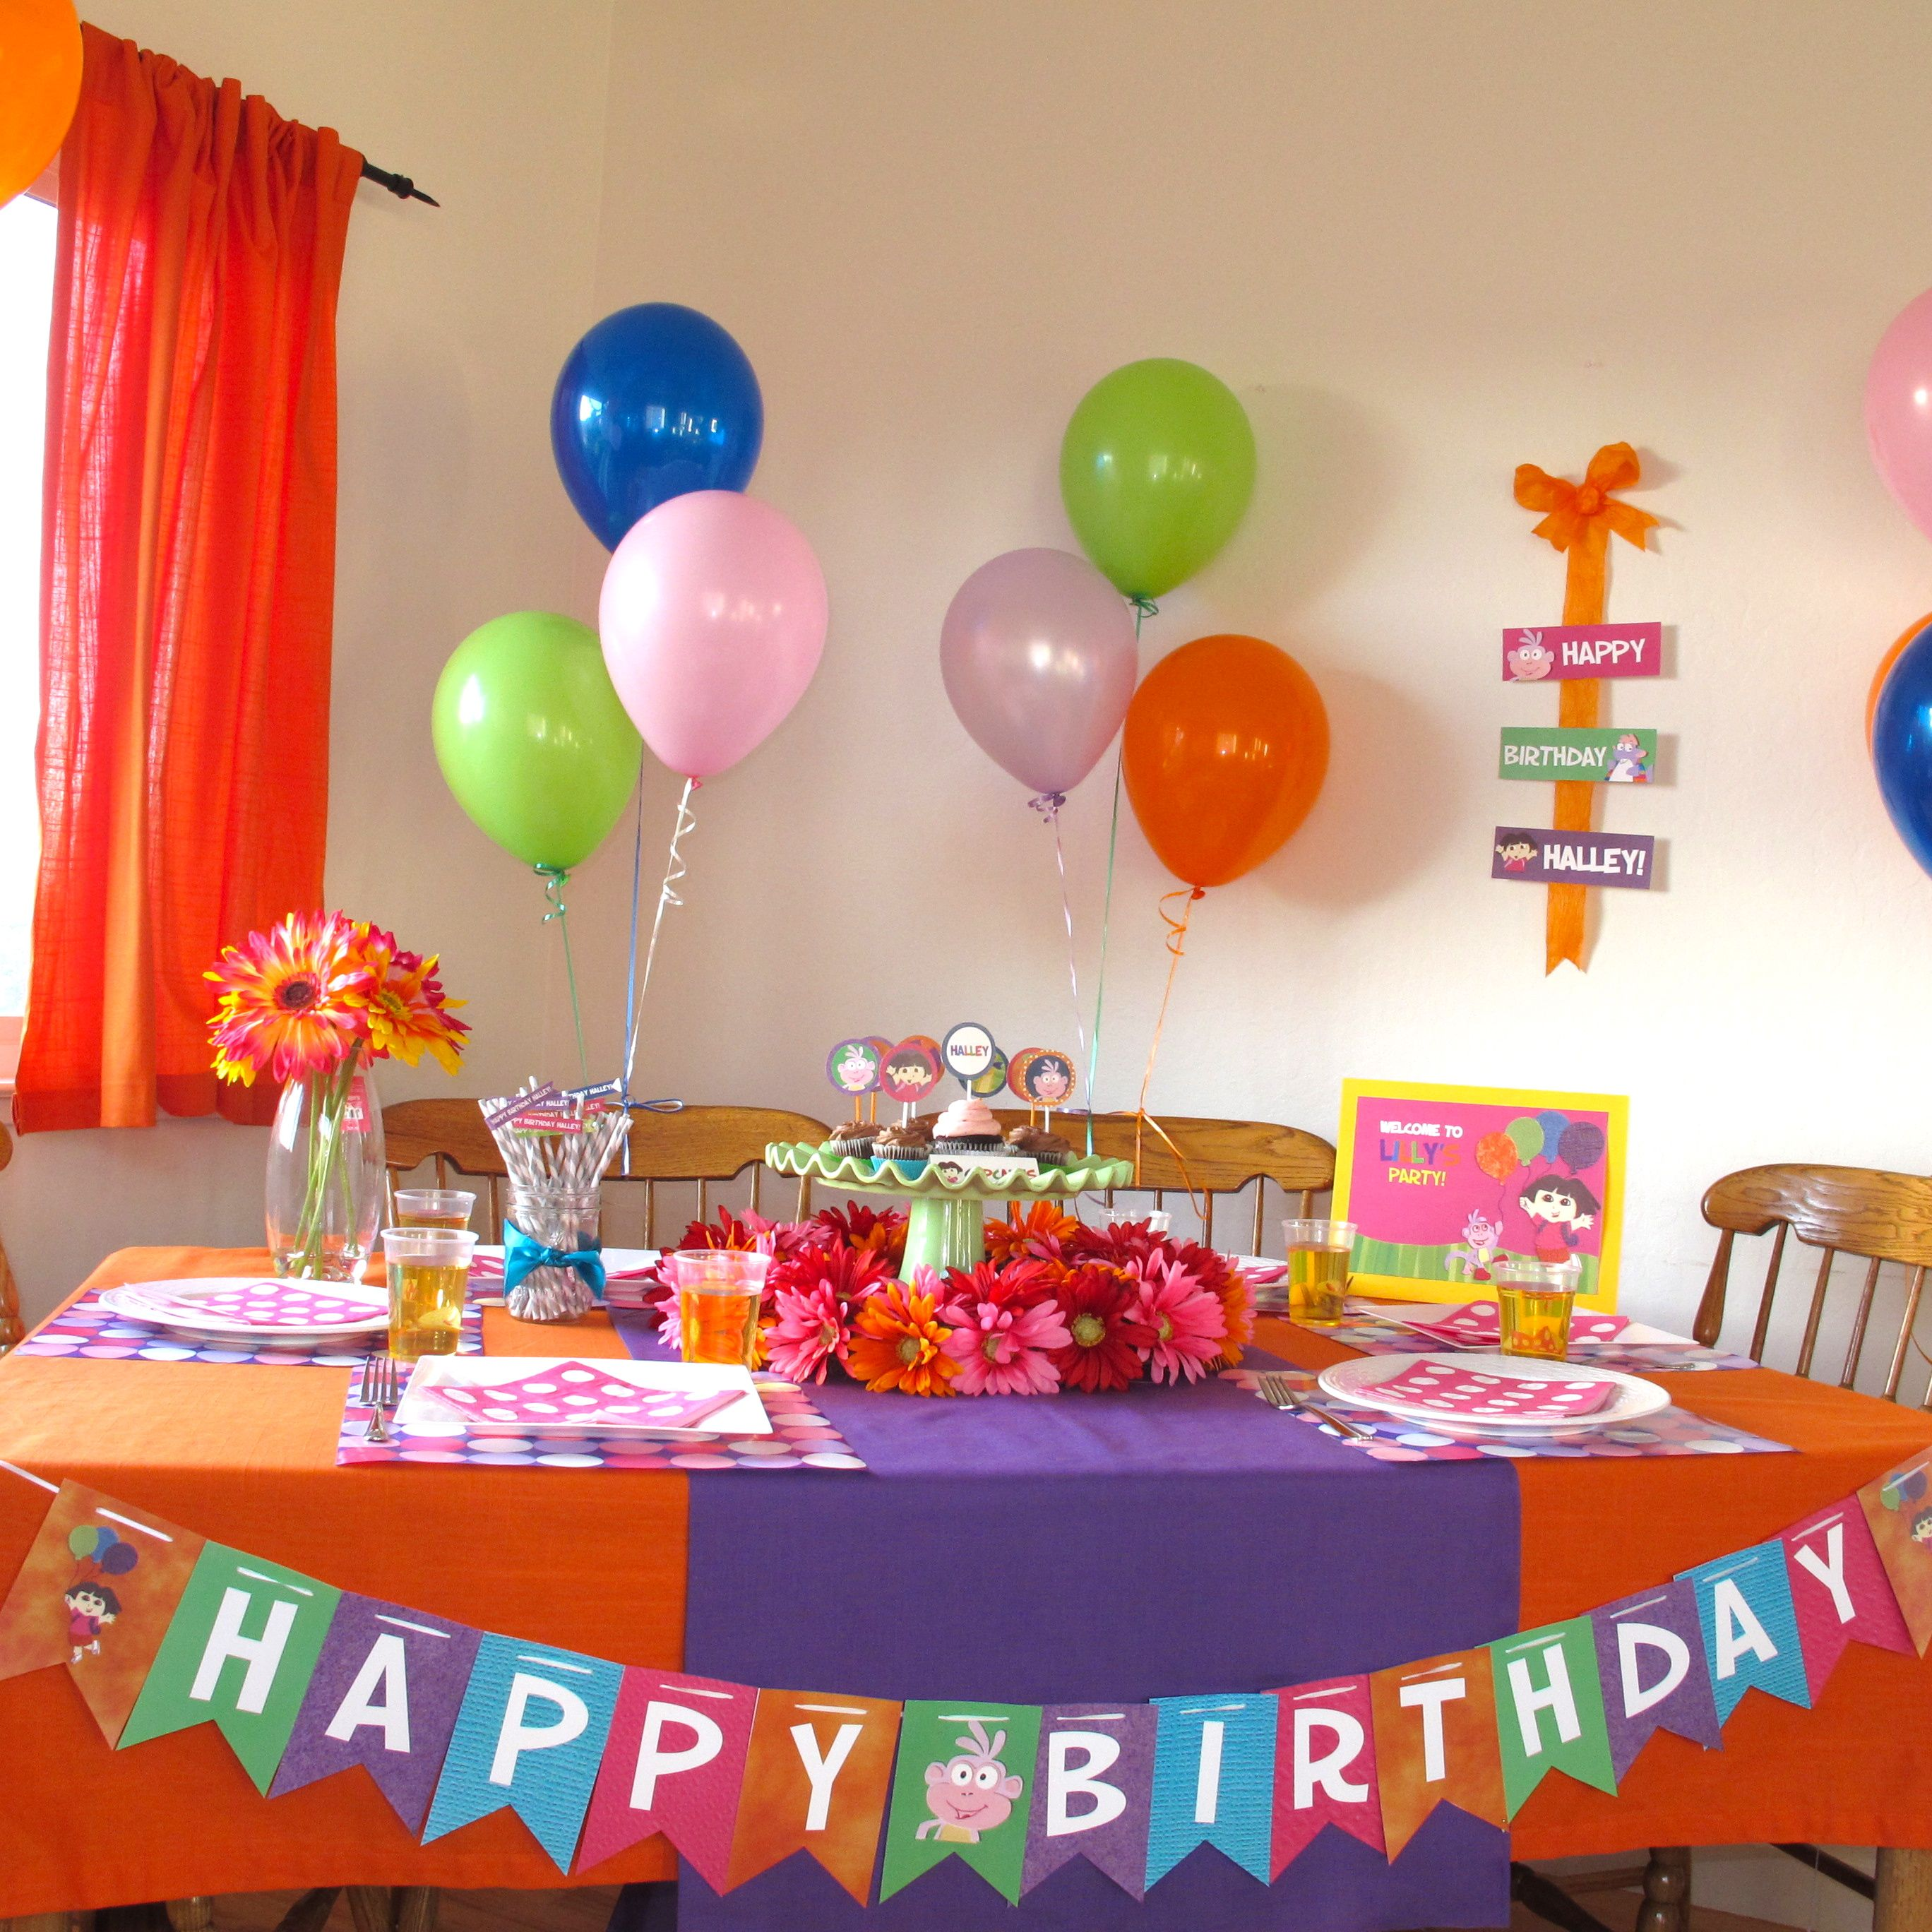 Dora the Explorer Party Pics Banners Birthdays and Birthday party